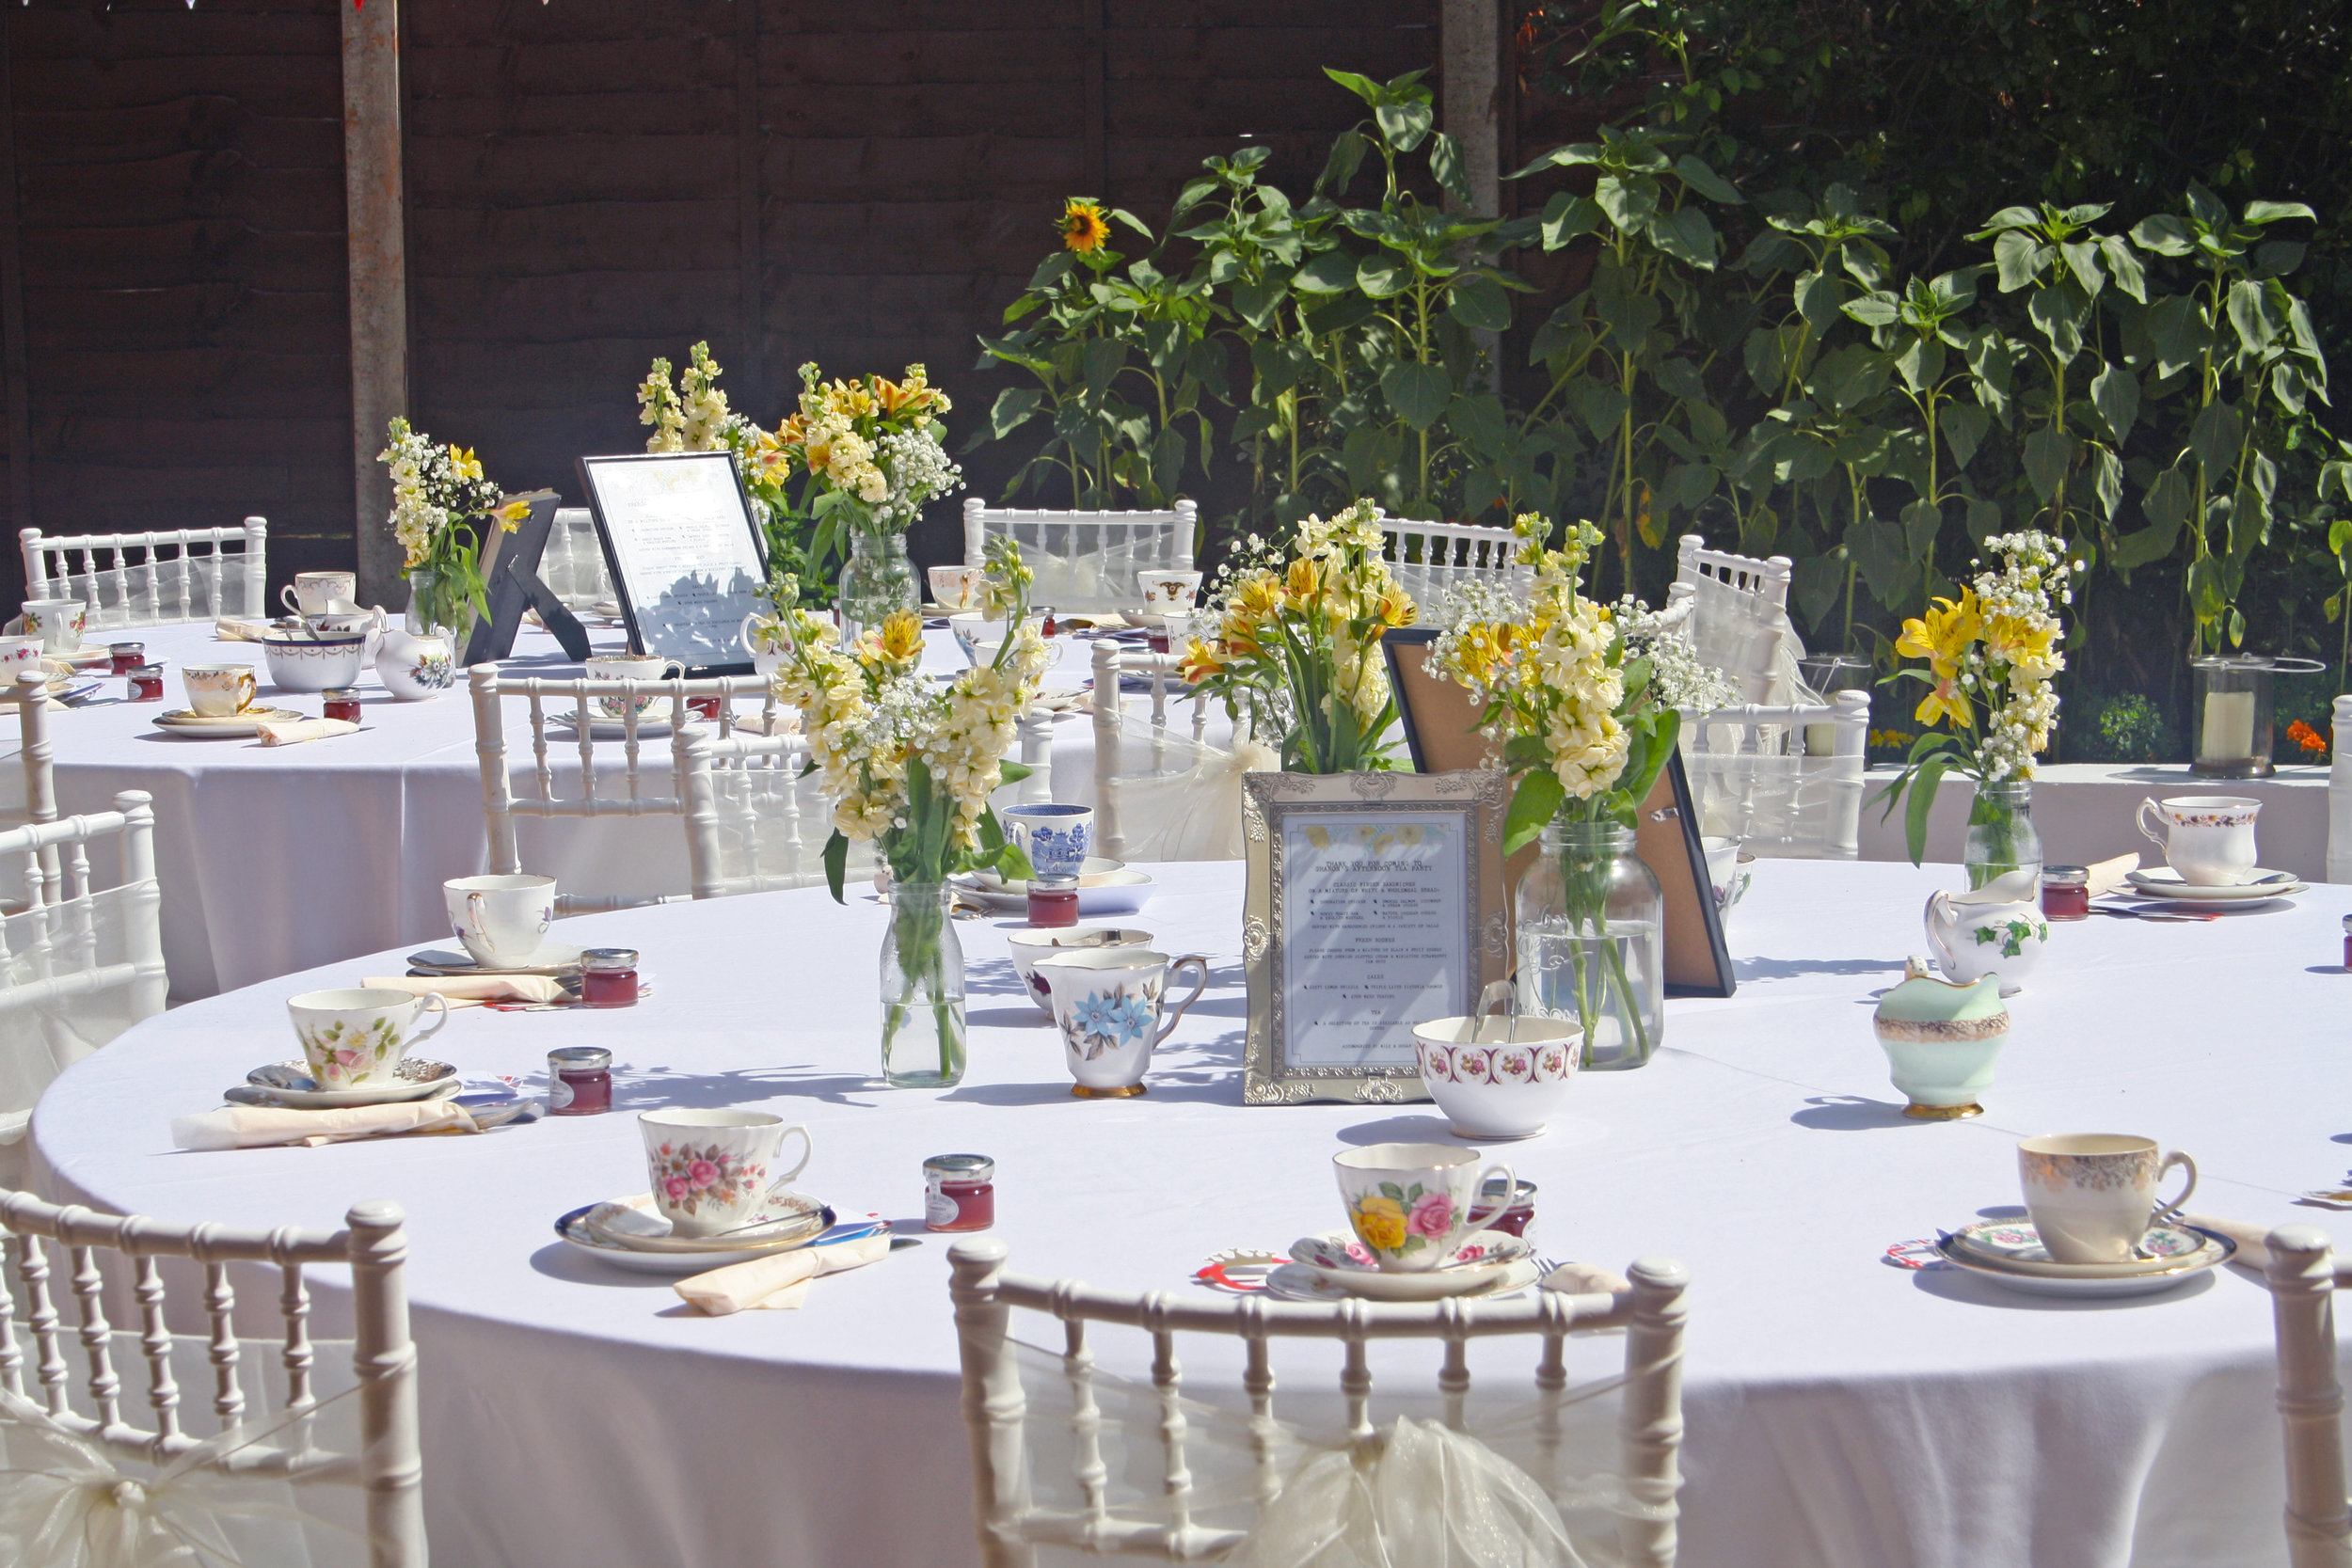 We also provide our Classic Vintage theme for weddings & all other events up to 80 guests at present.